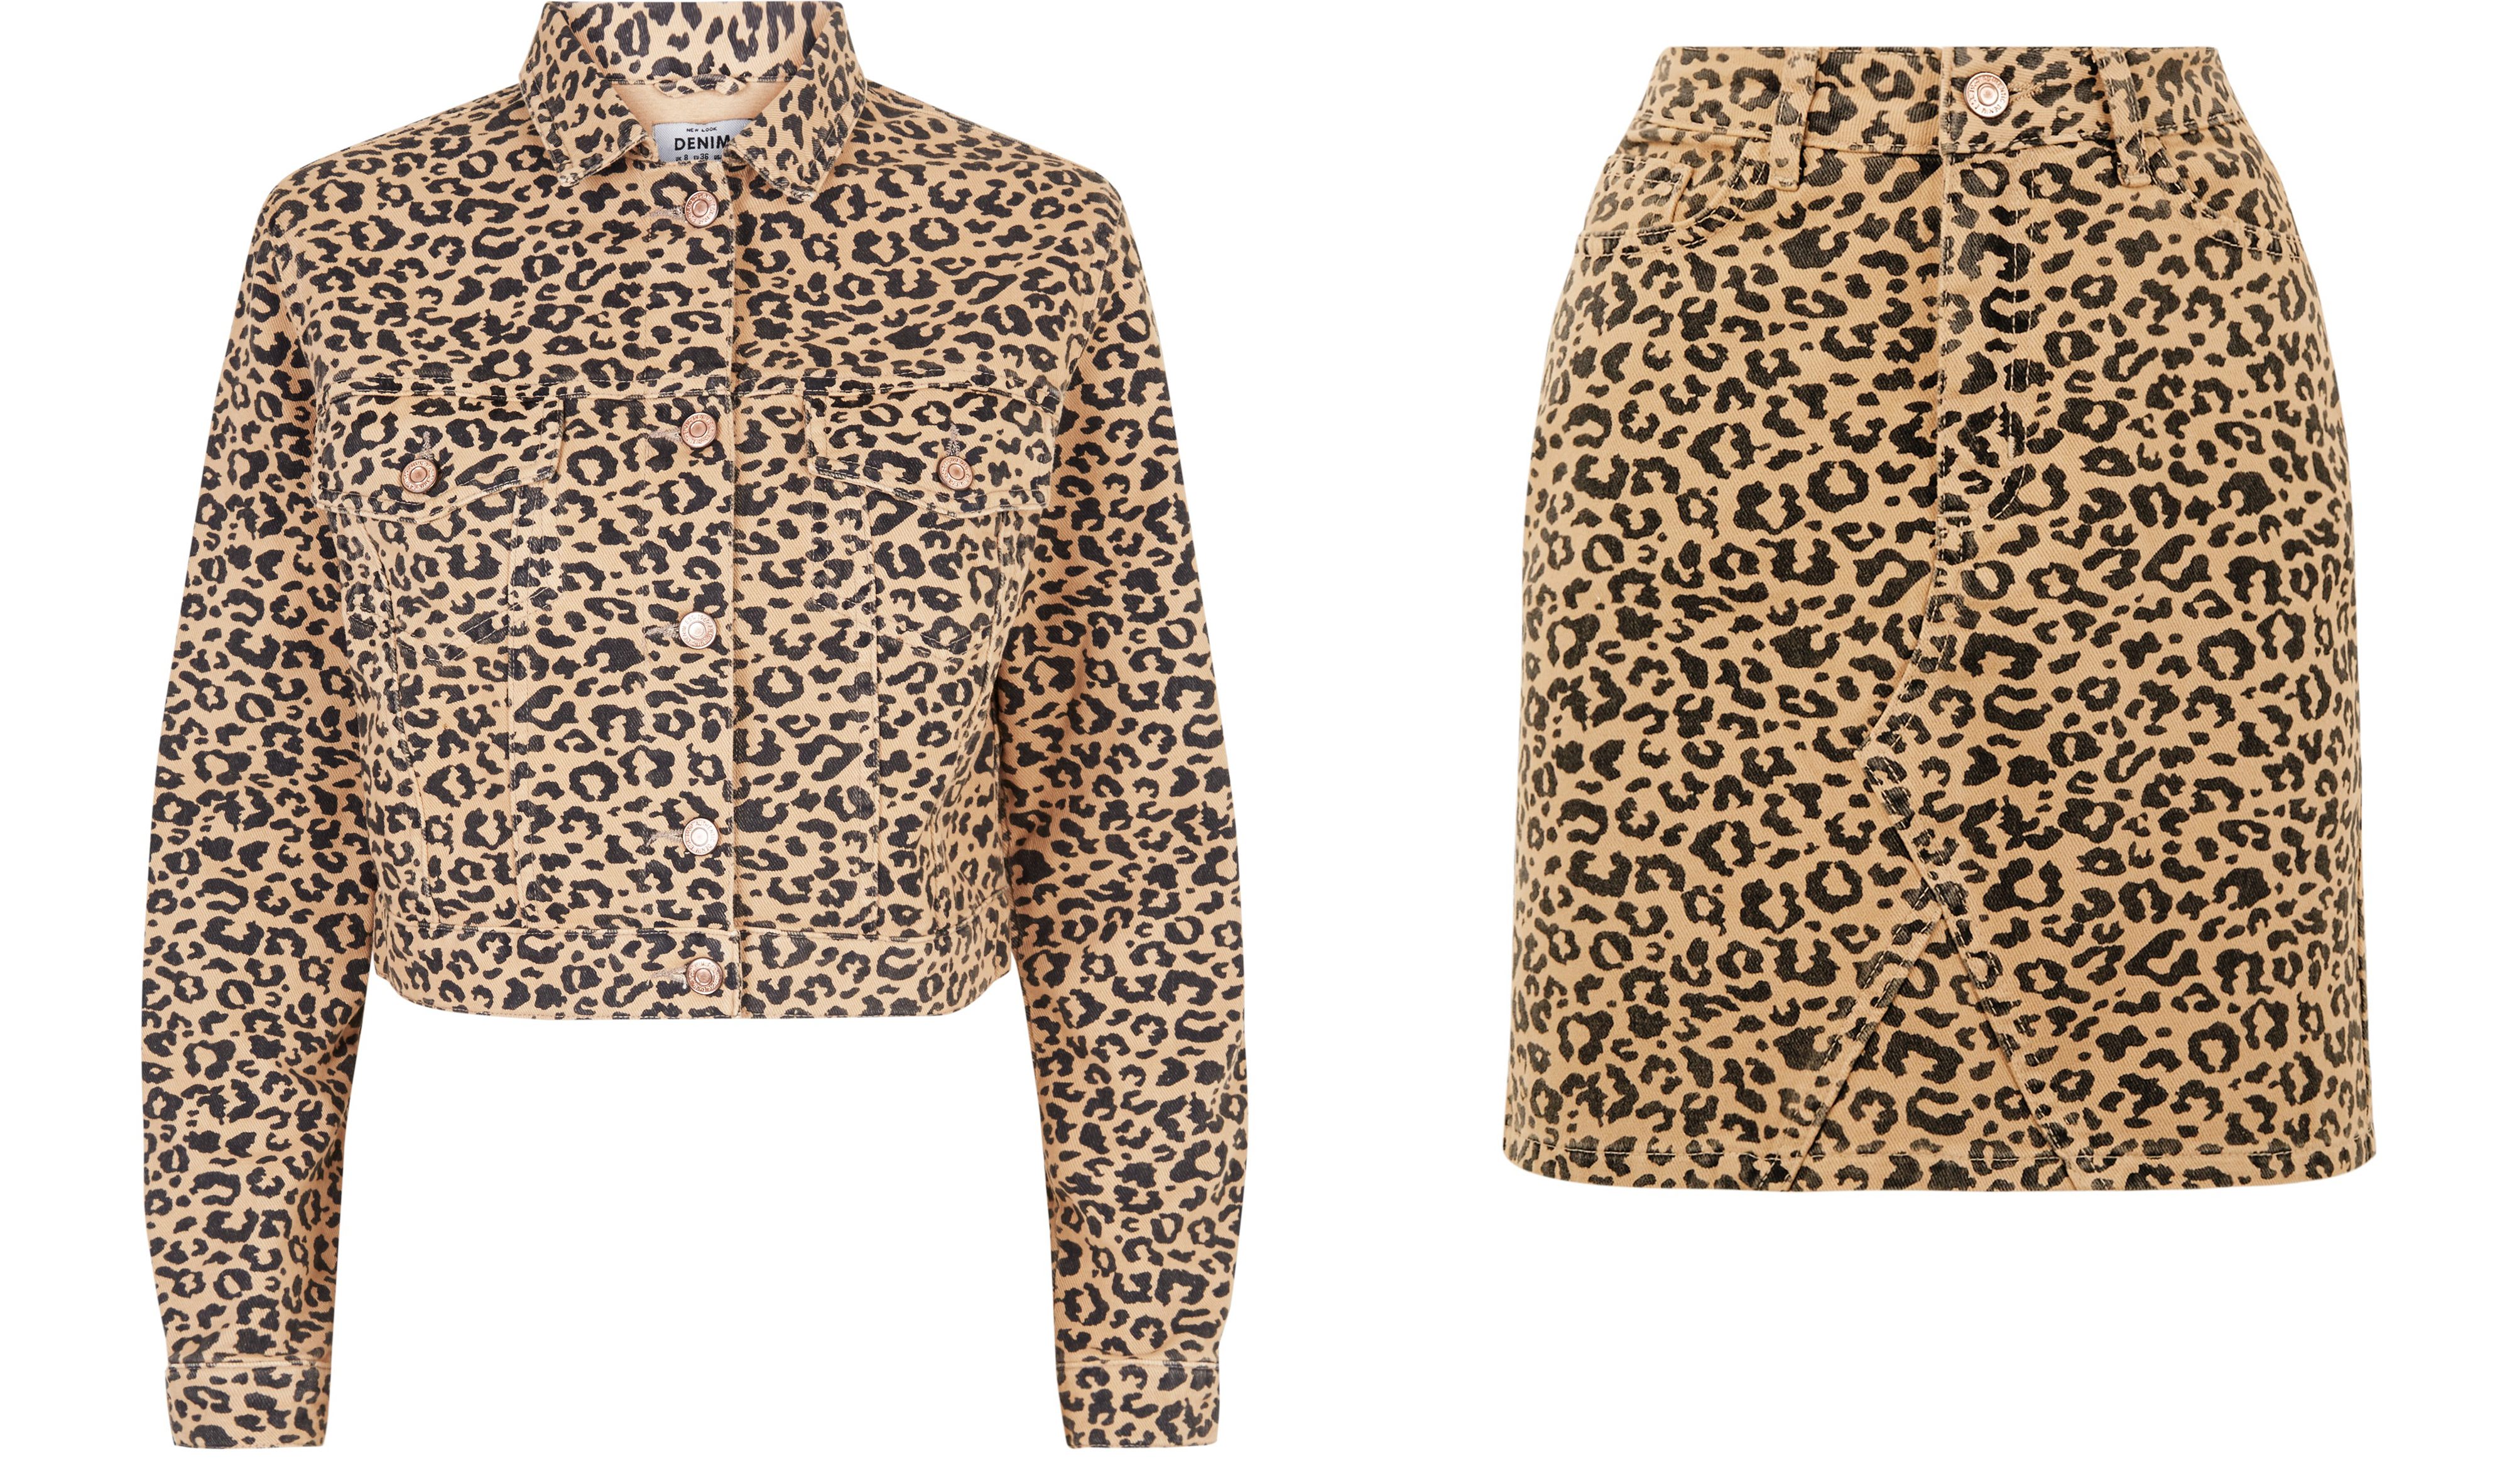 New Look Brown Leopard Print Cropped Denim Jacket and Tan Leopard Print Denim Mini Skirt